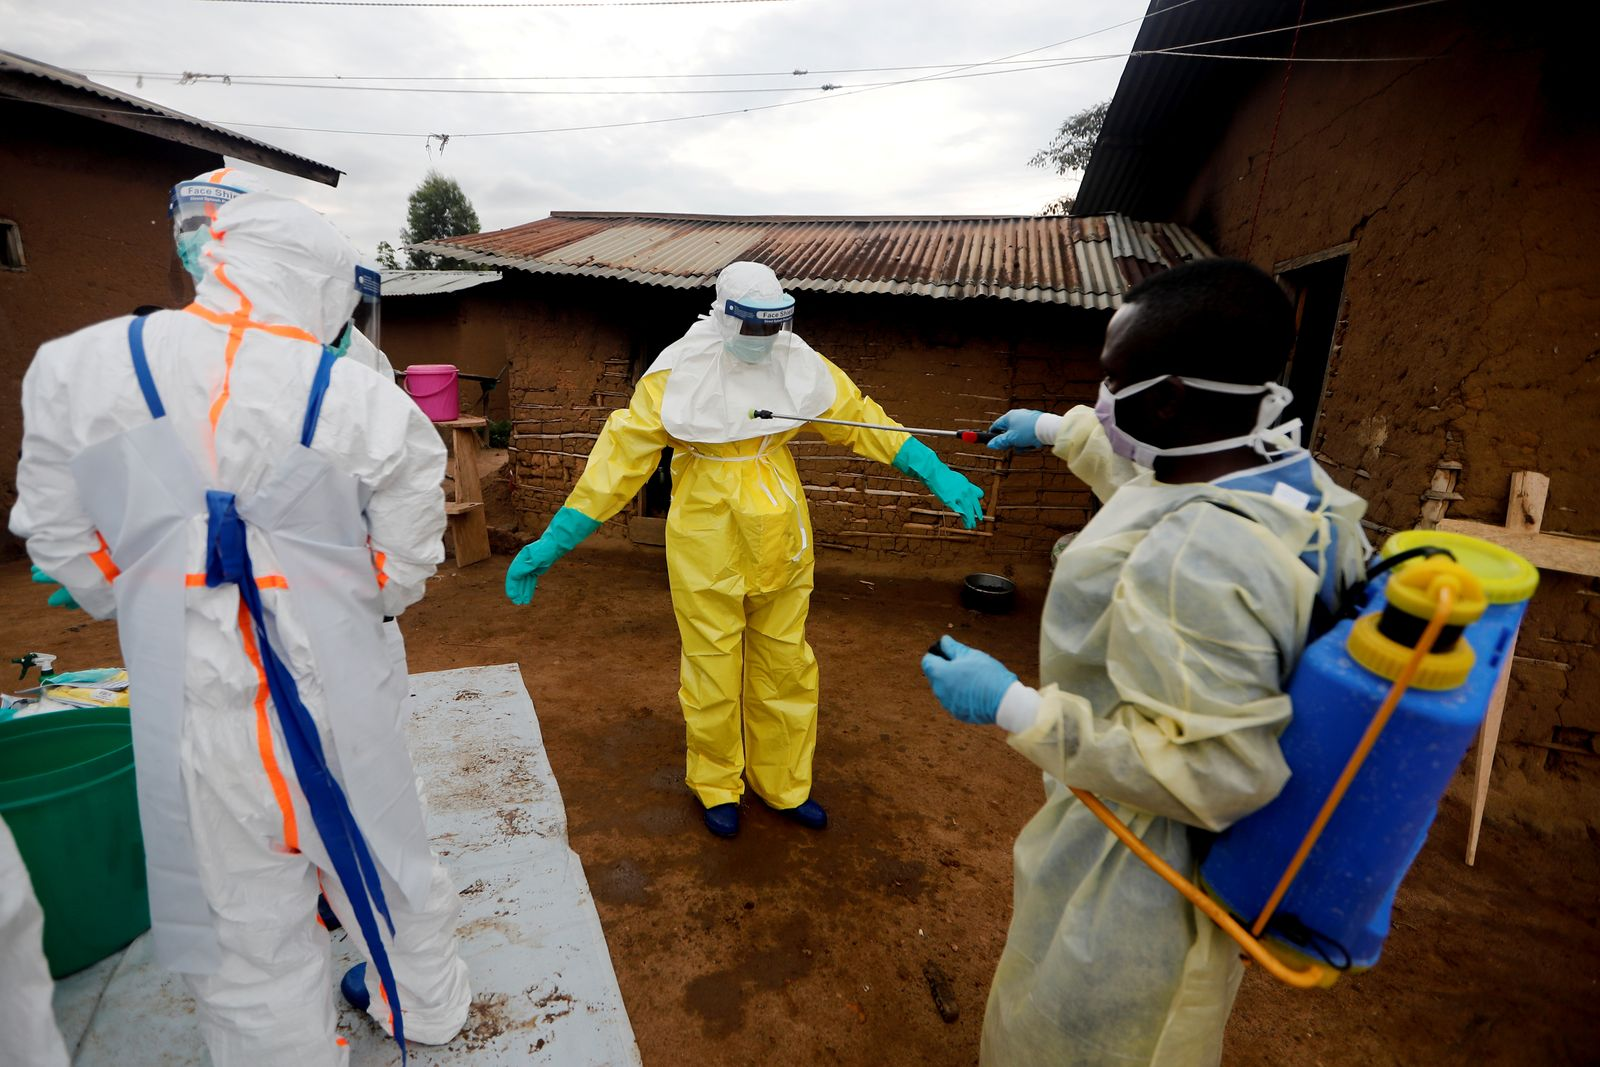 Healthcare worker Kavota Mugisha Robert decontaminates his colleague after he entered the house of 85-year-old woman suspected of dying of Ebola in the eastern Congolese town of Beni